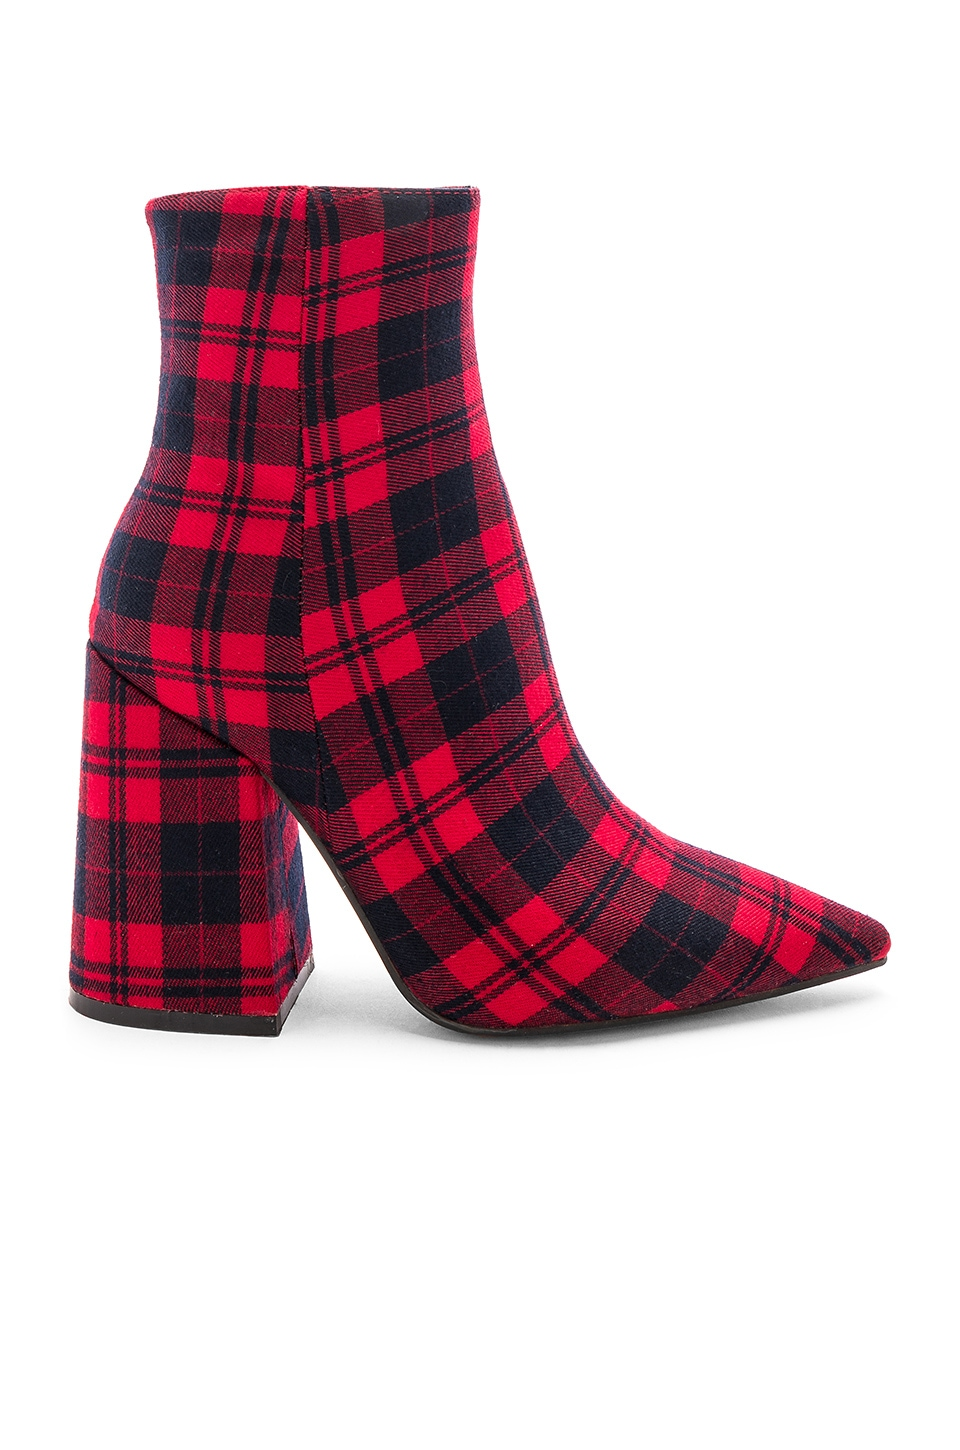 Alias Mae Ahara Bootie in Red Tartan